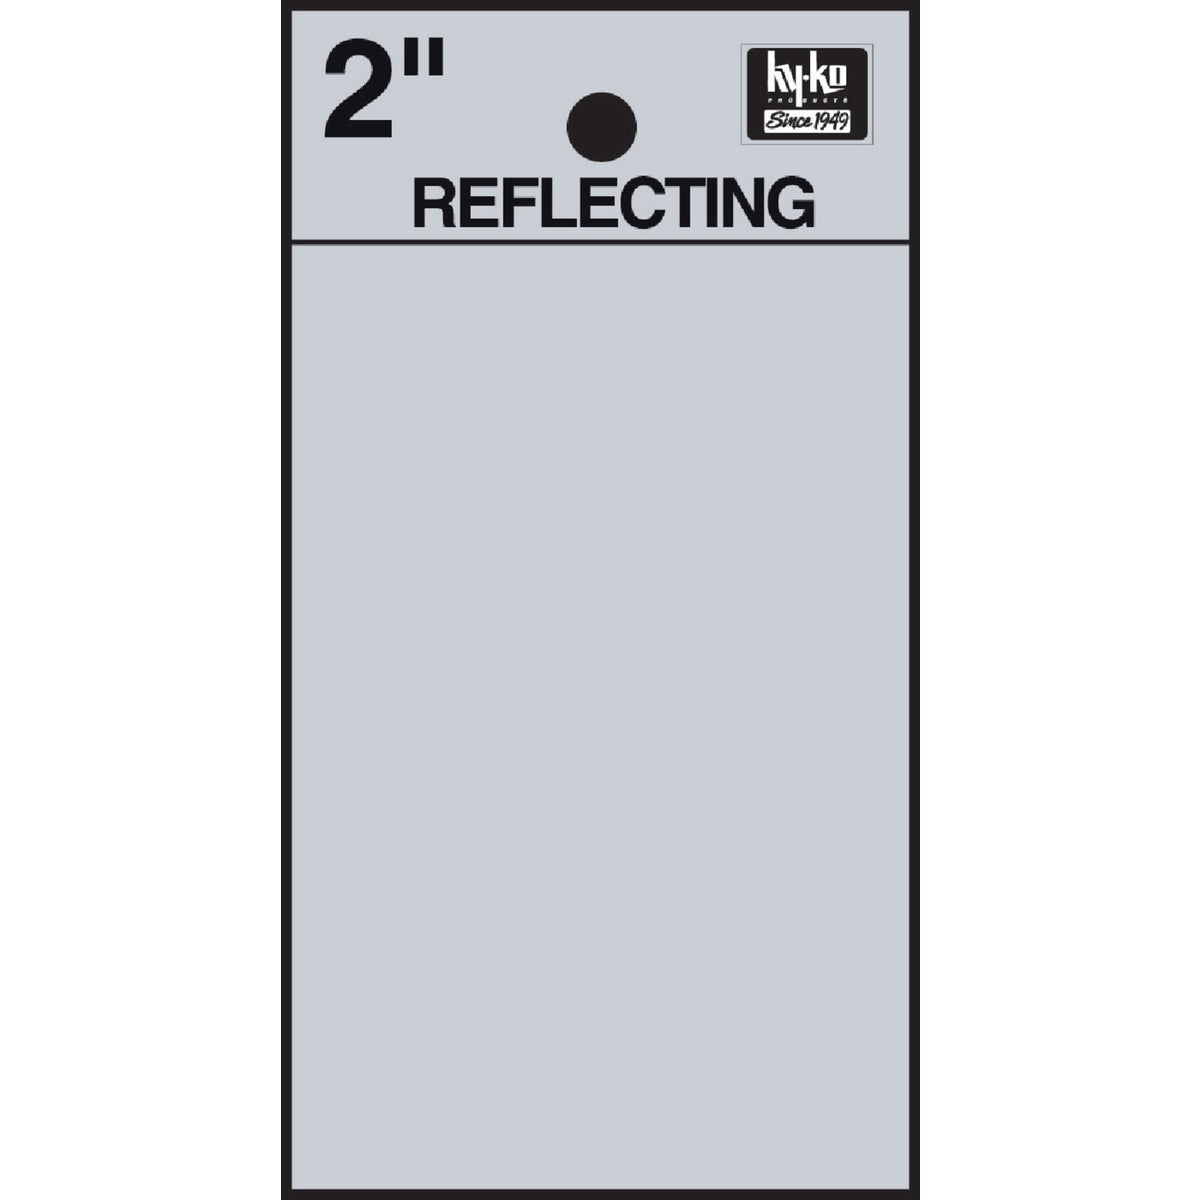 "2"" REFLECT BLANK - RV-25/BLNK by Hy Ko Prods Co"